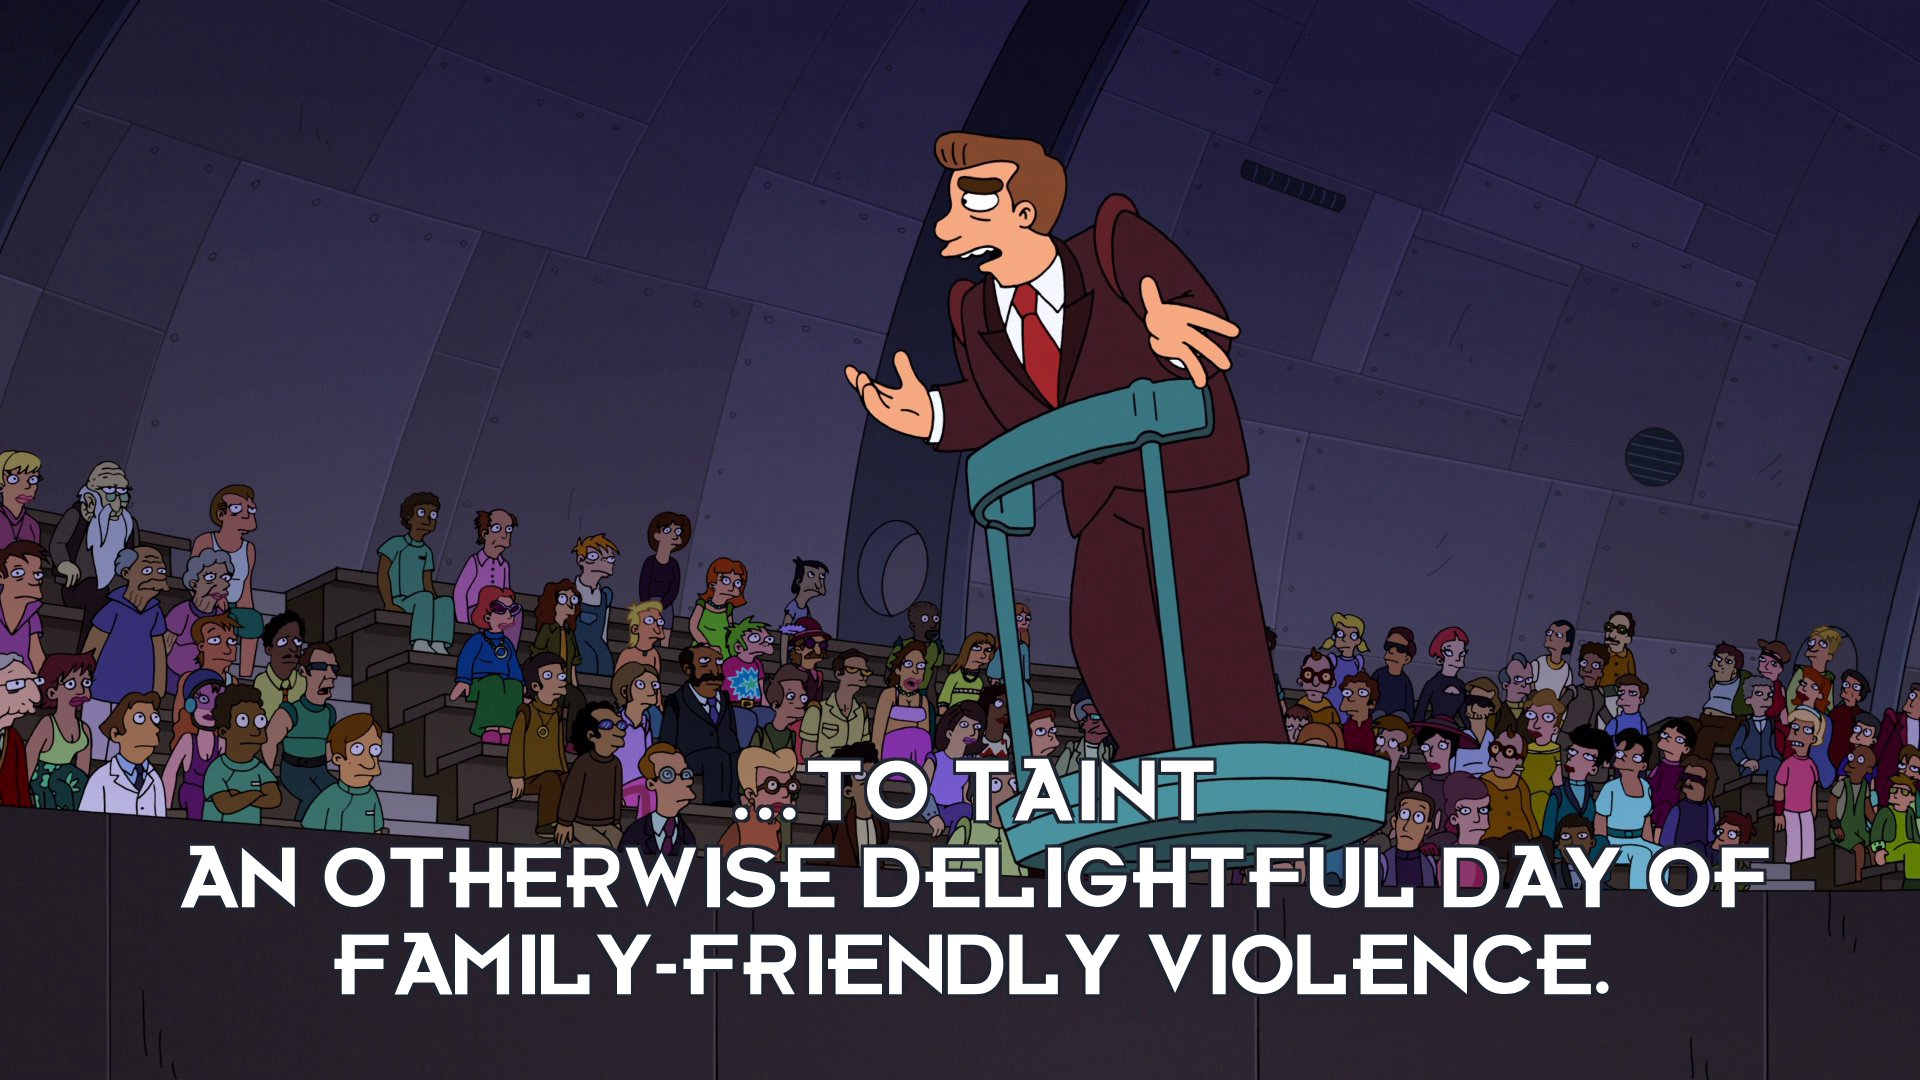 Abner Doubledeal: ...to taint an otherwise delightful day of family-friendly violence.